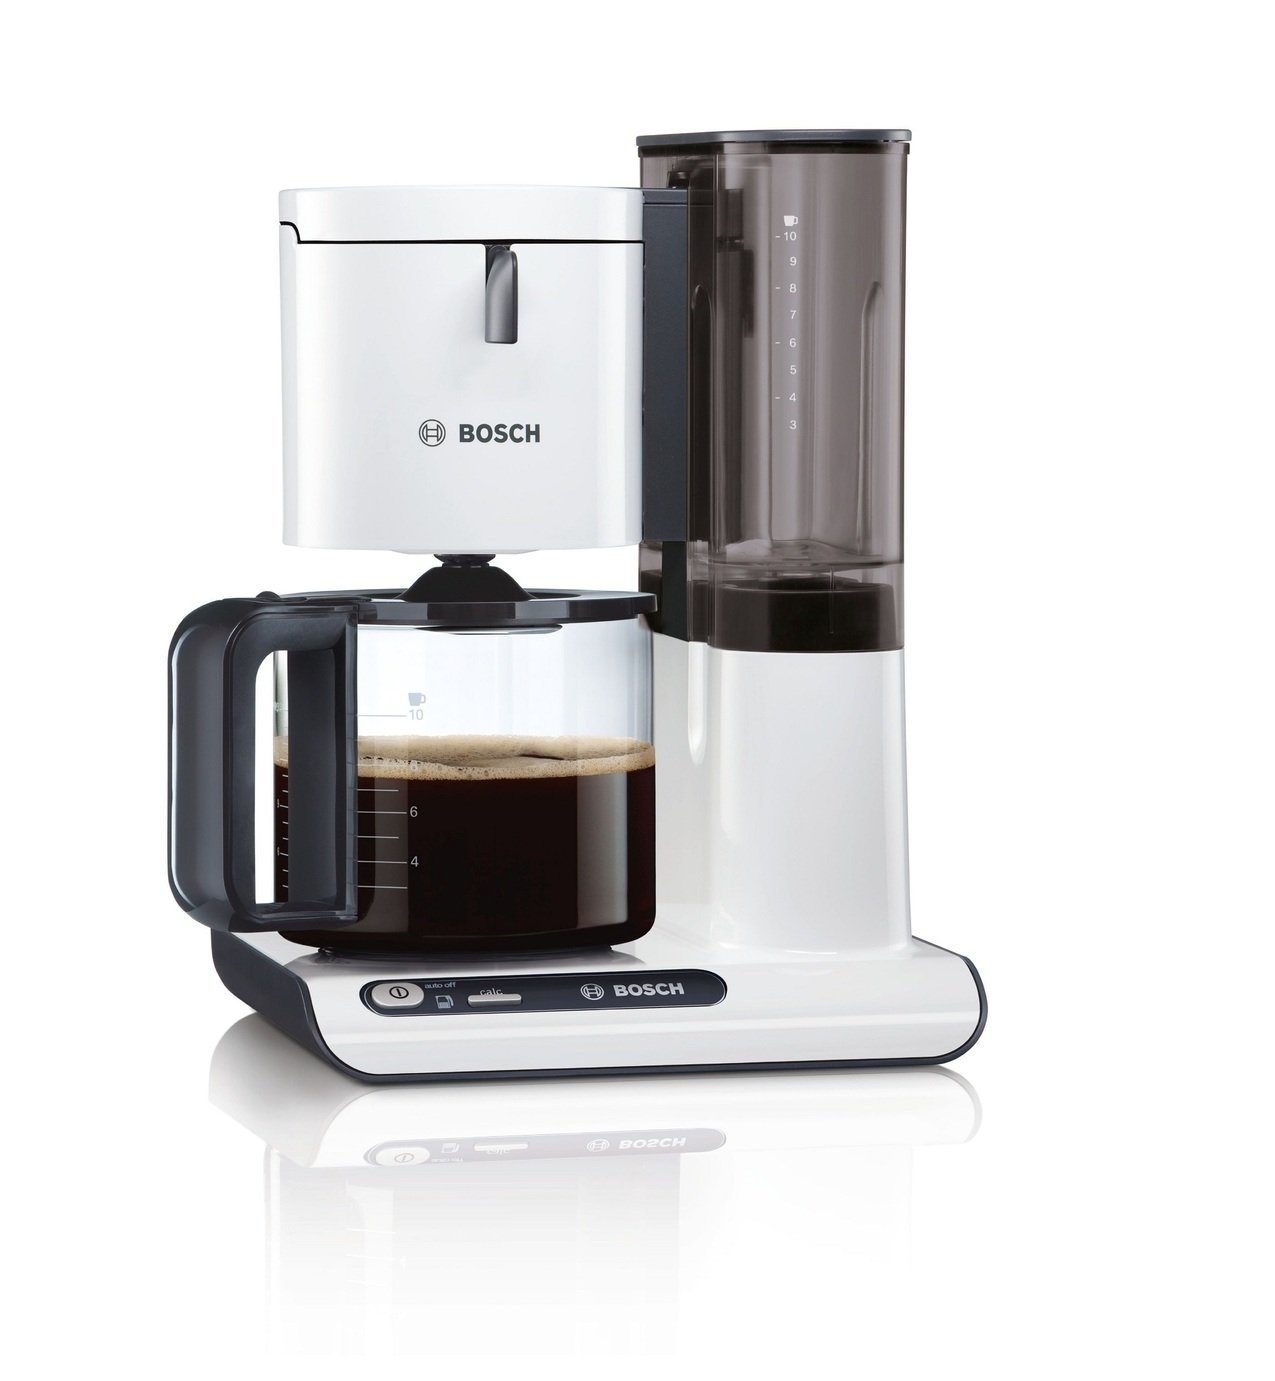 Bosch TKA8011 coffee maker - coffee makers (freestanding, Drip coffee maker, Coffee, Anthracite, White, 50/60 Hz, CE, ROSTEST, VDE)